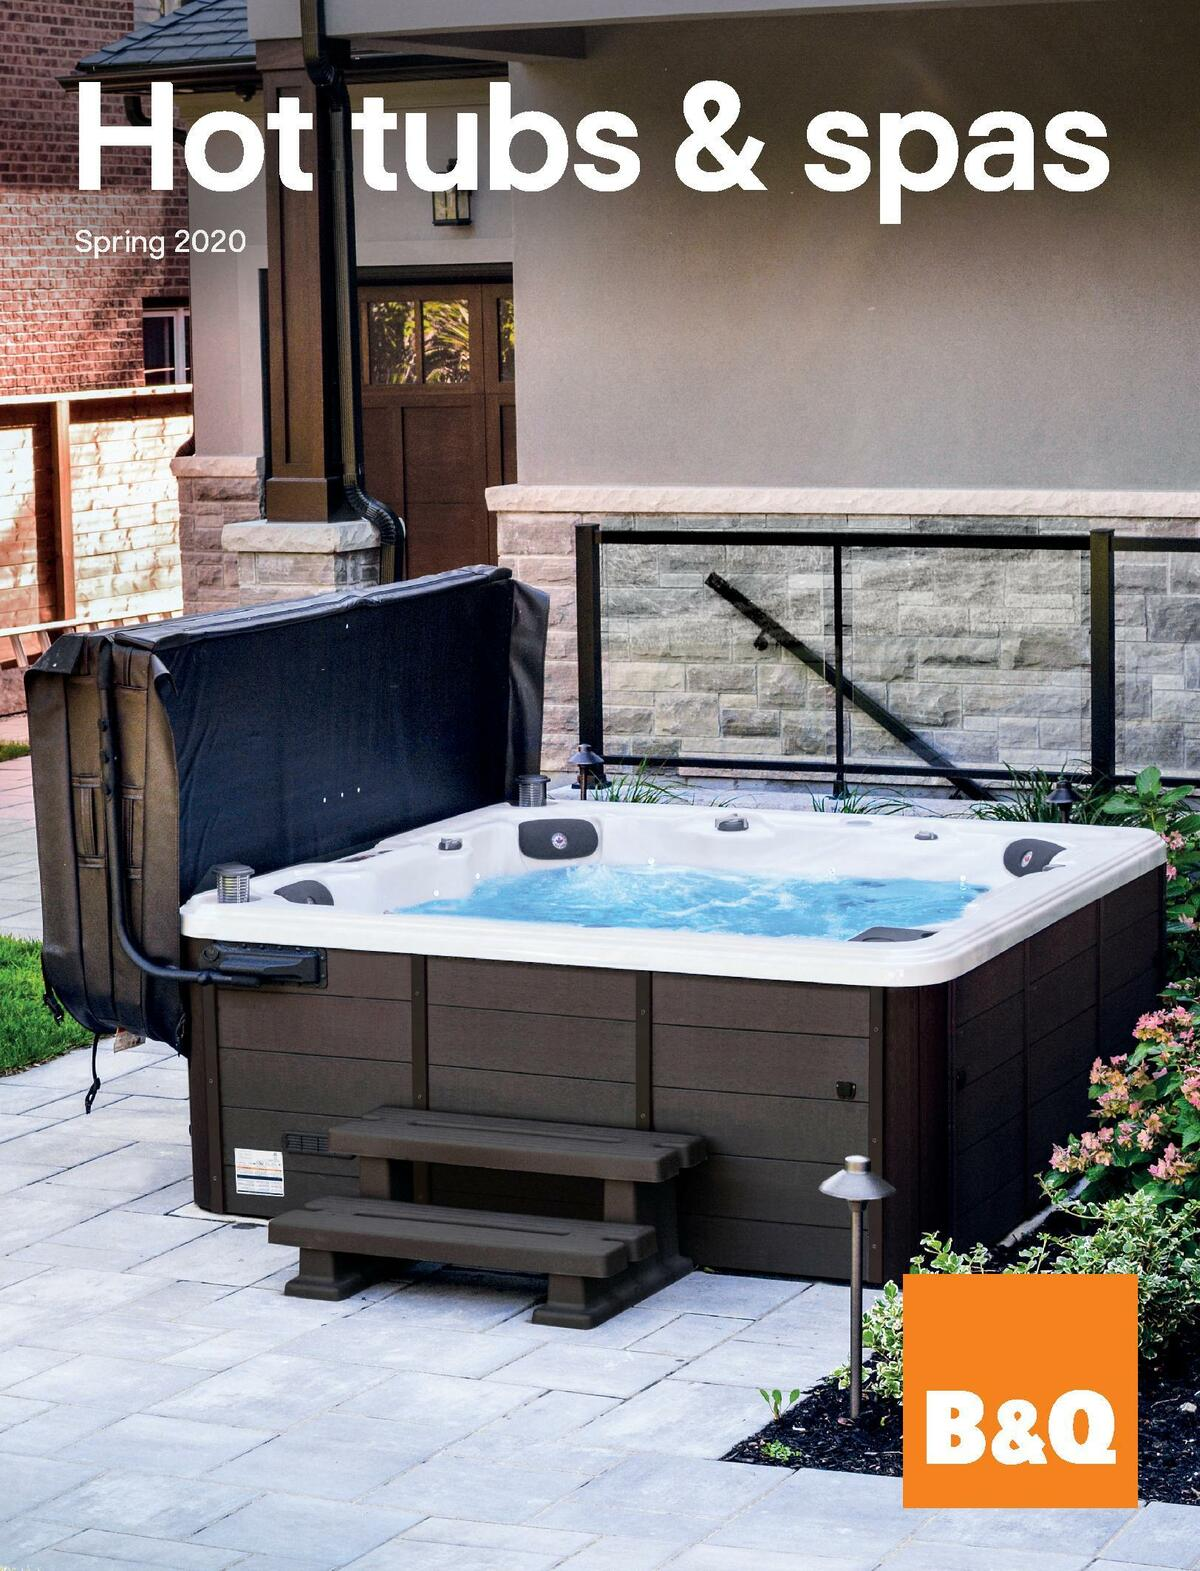 B&Q Hot Tub & Spa Collections Offers from March 6